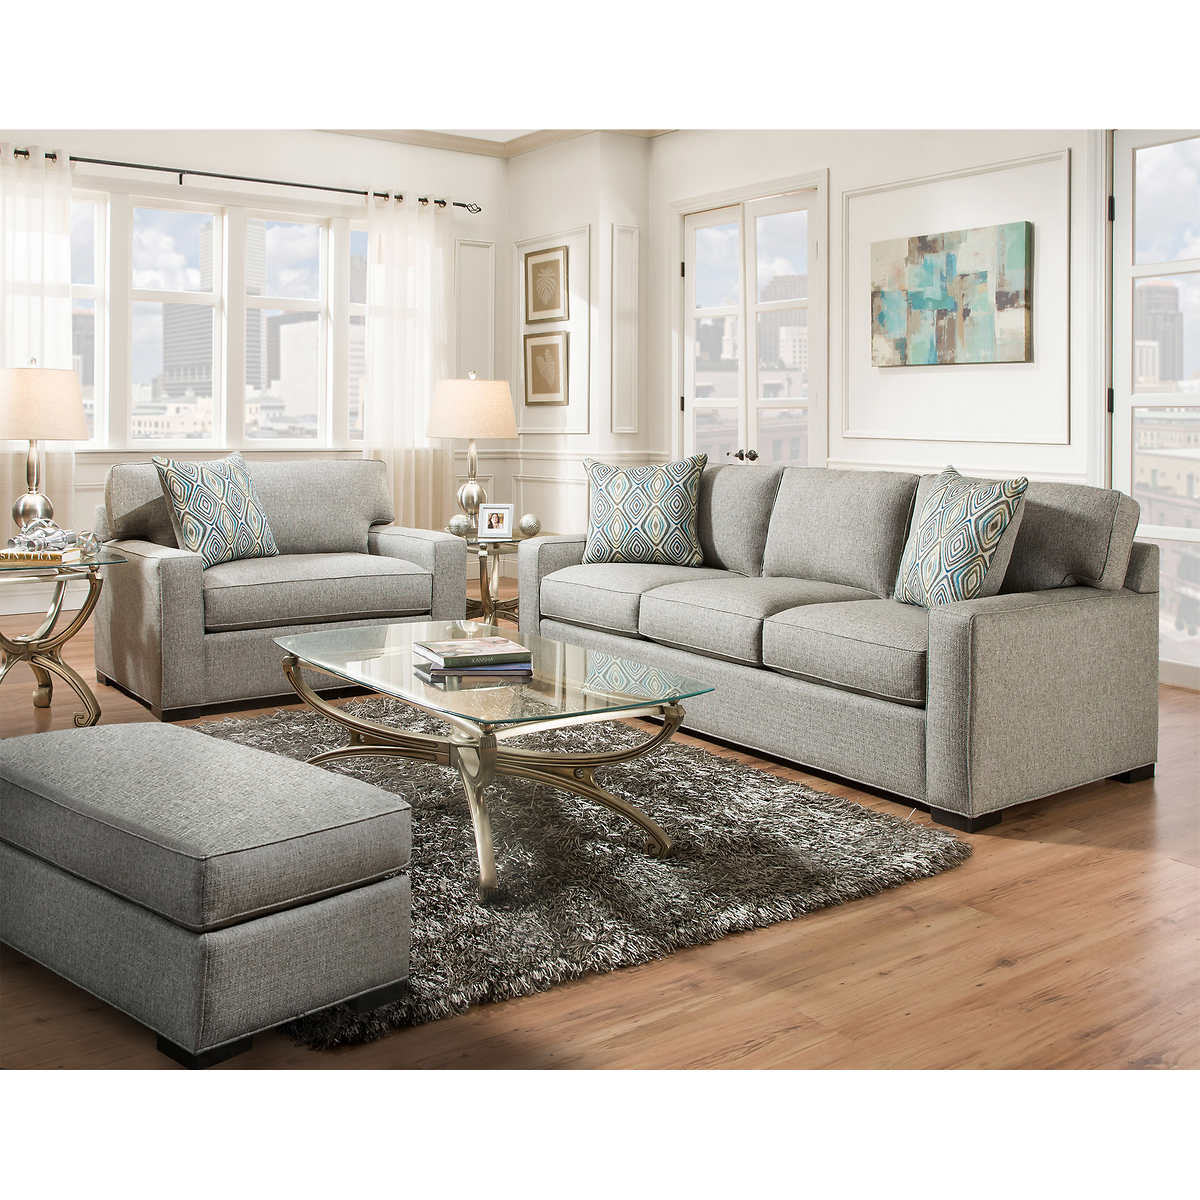 Brown Living Room Couches fabric sofas & sectionals | costco